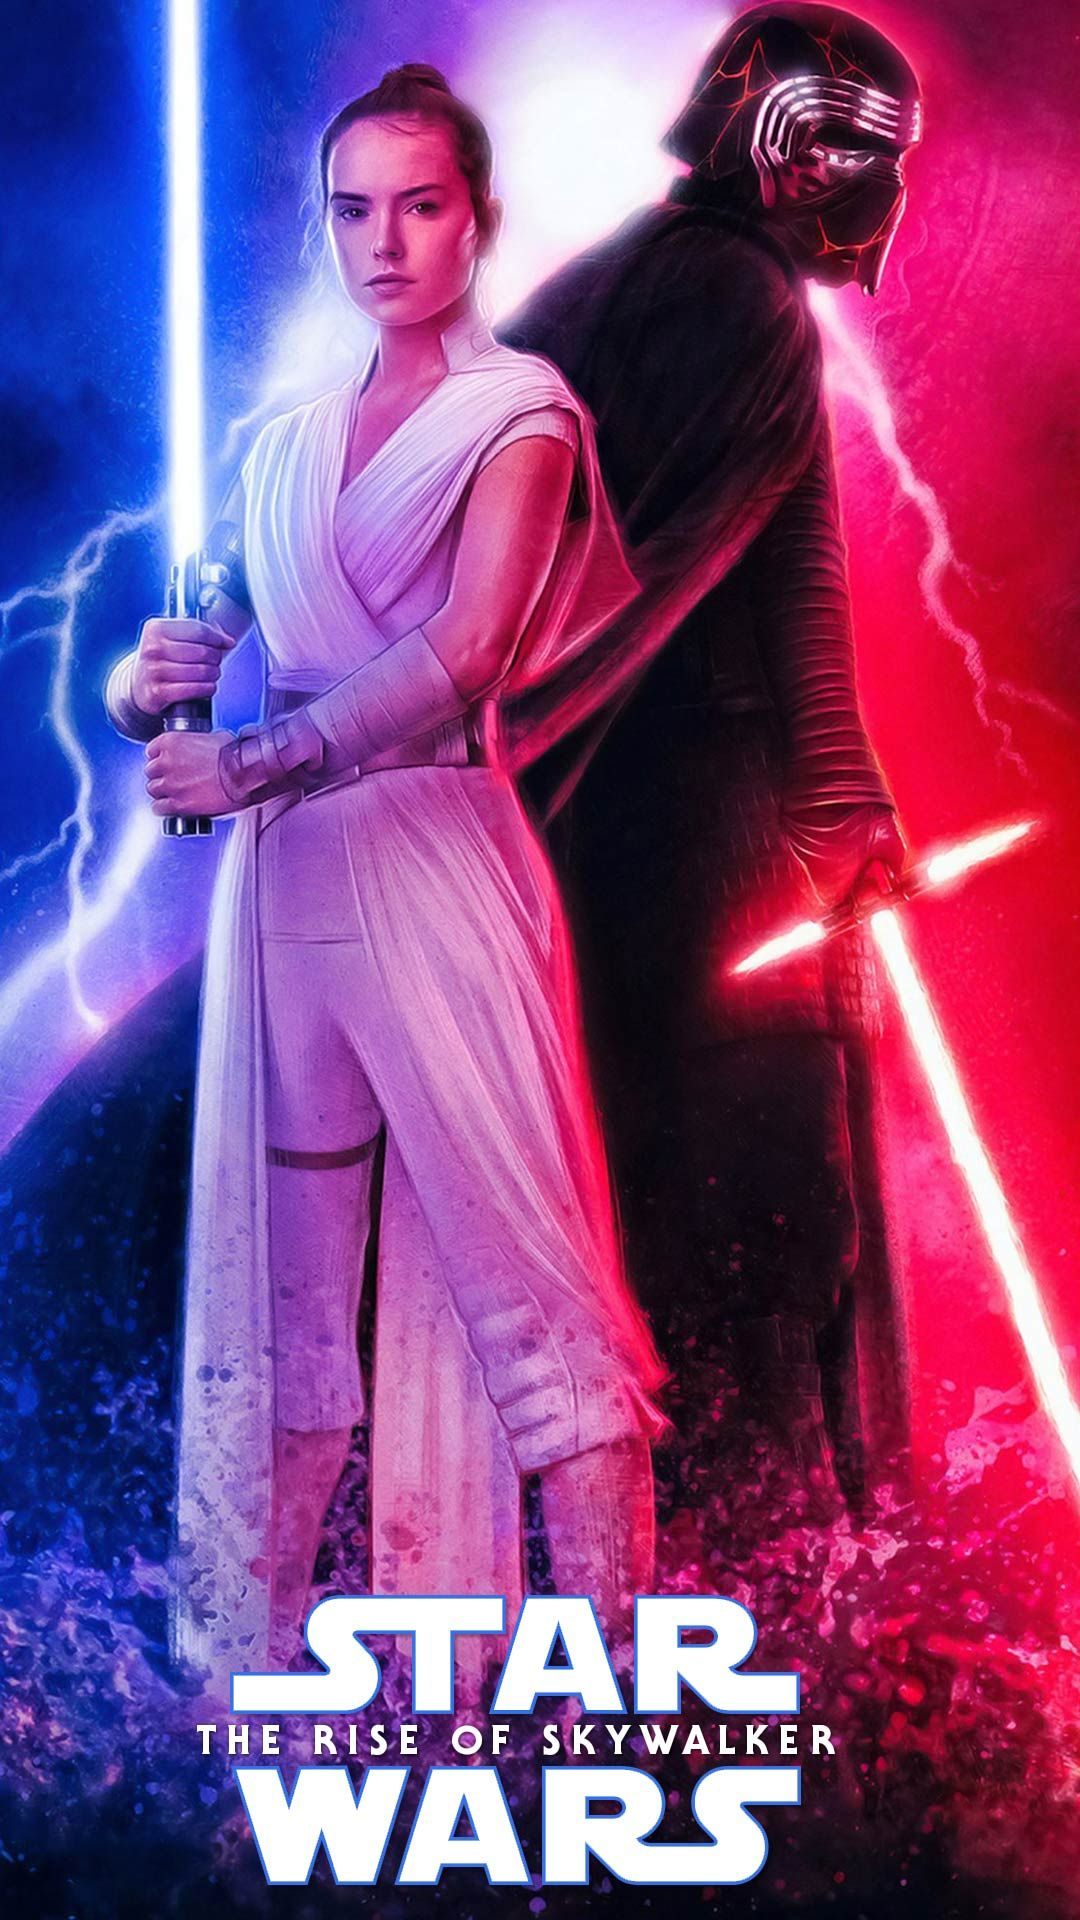 10 Star Wars The Rise Of Skywalker Wallpaper Phone Backgrounds Star Wars Episodes Star Wars Poster Star Wars Awesome